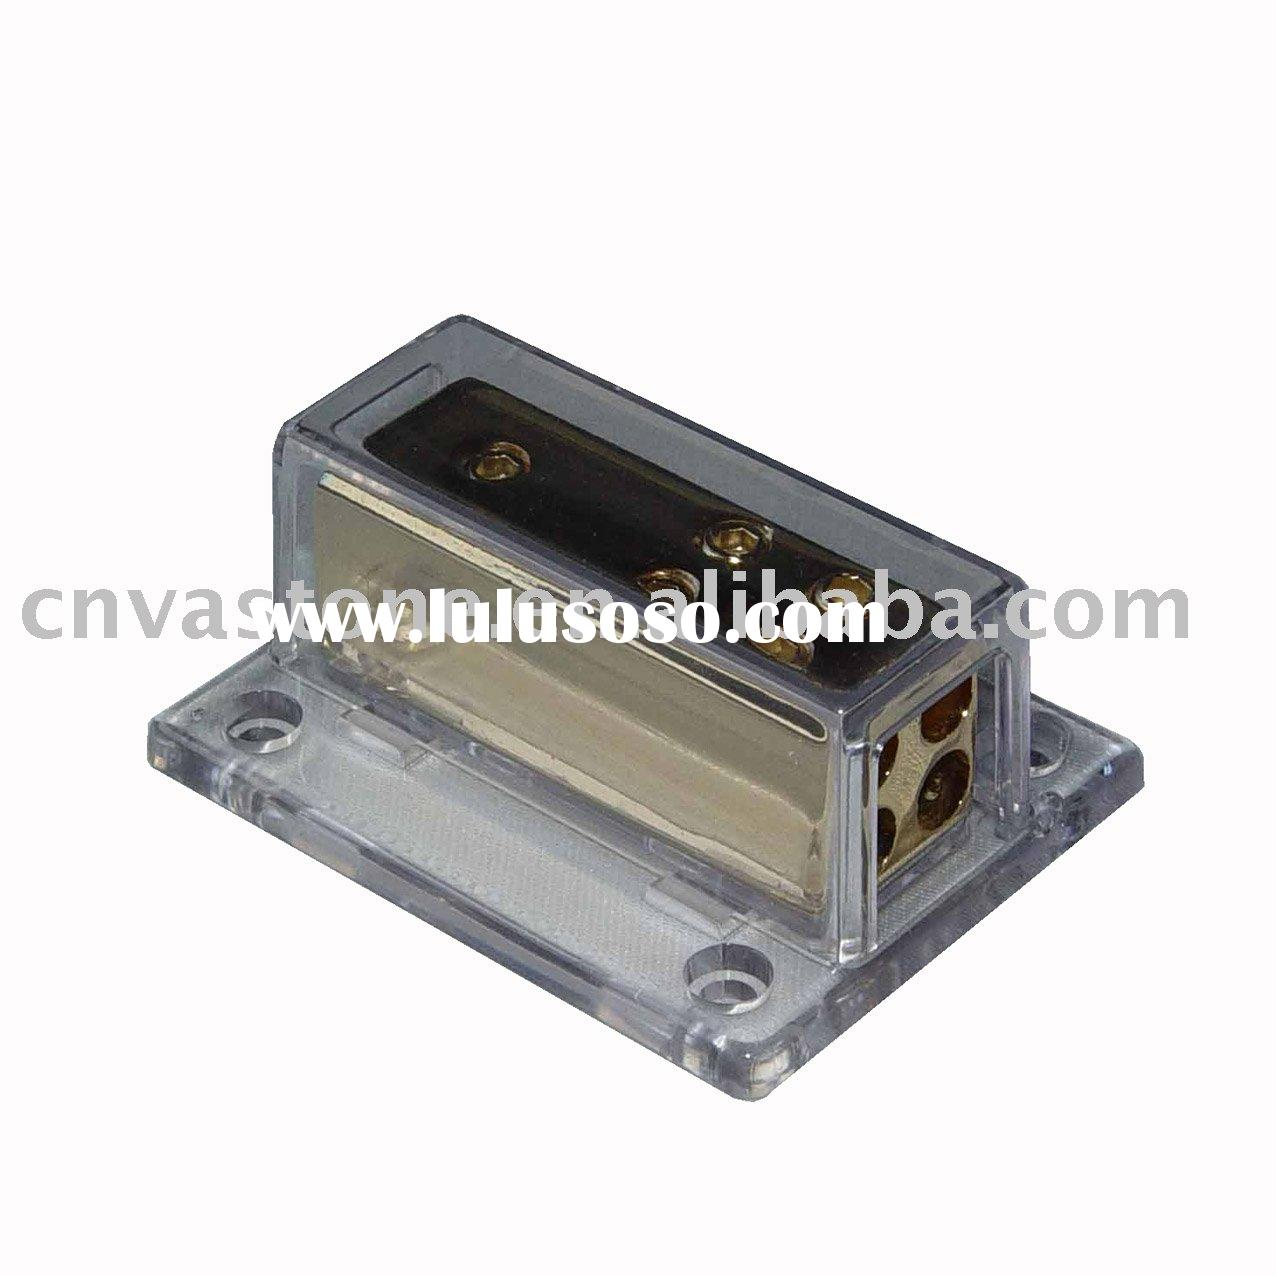 Car Audio Accessory-Power Distribution Block 37